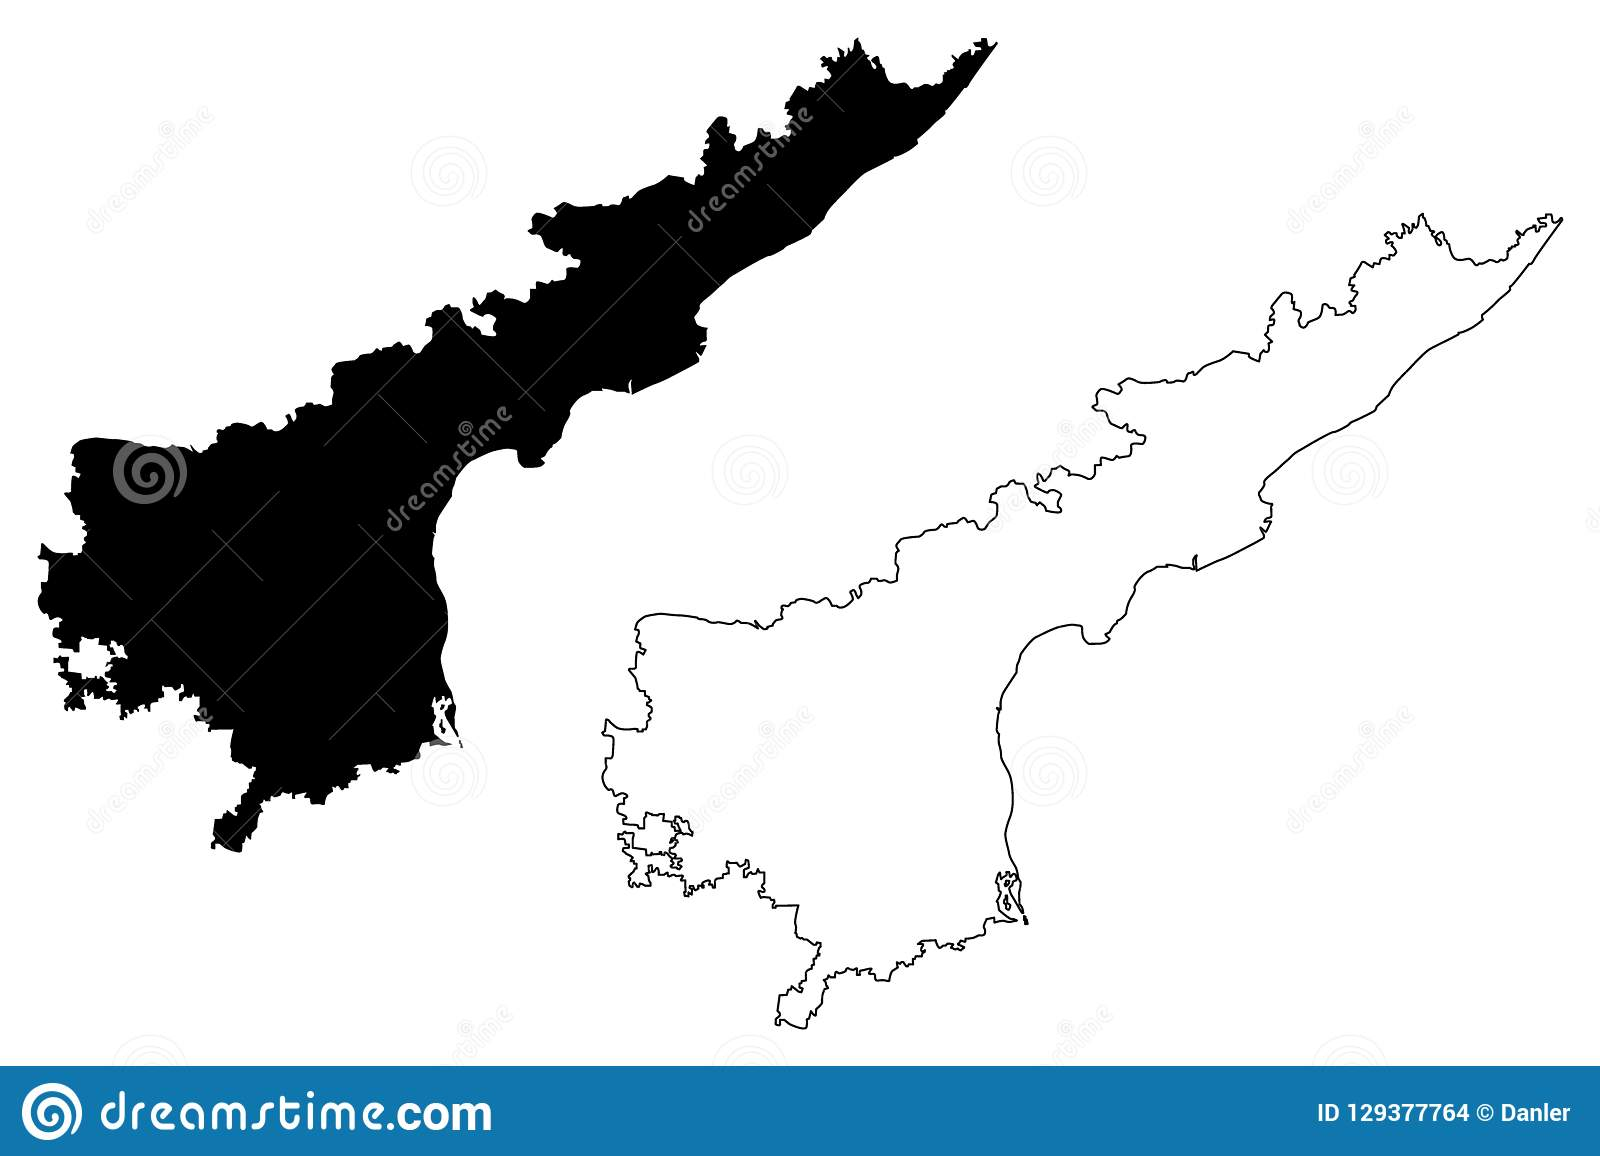 Andhra Pradesh map vector stock vector. Illustration of isolated ...